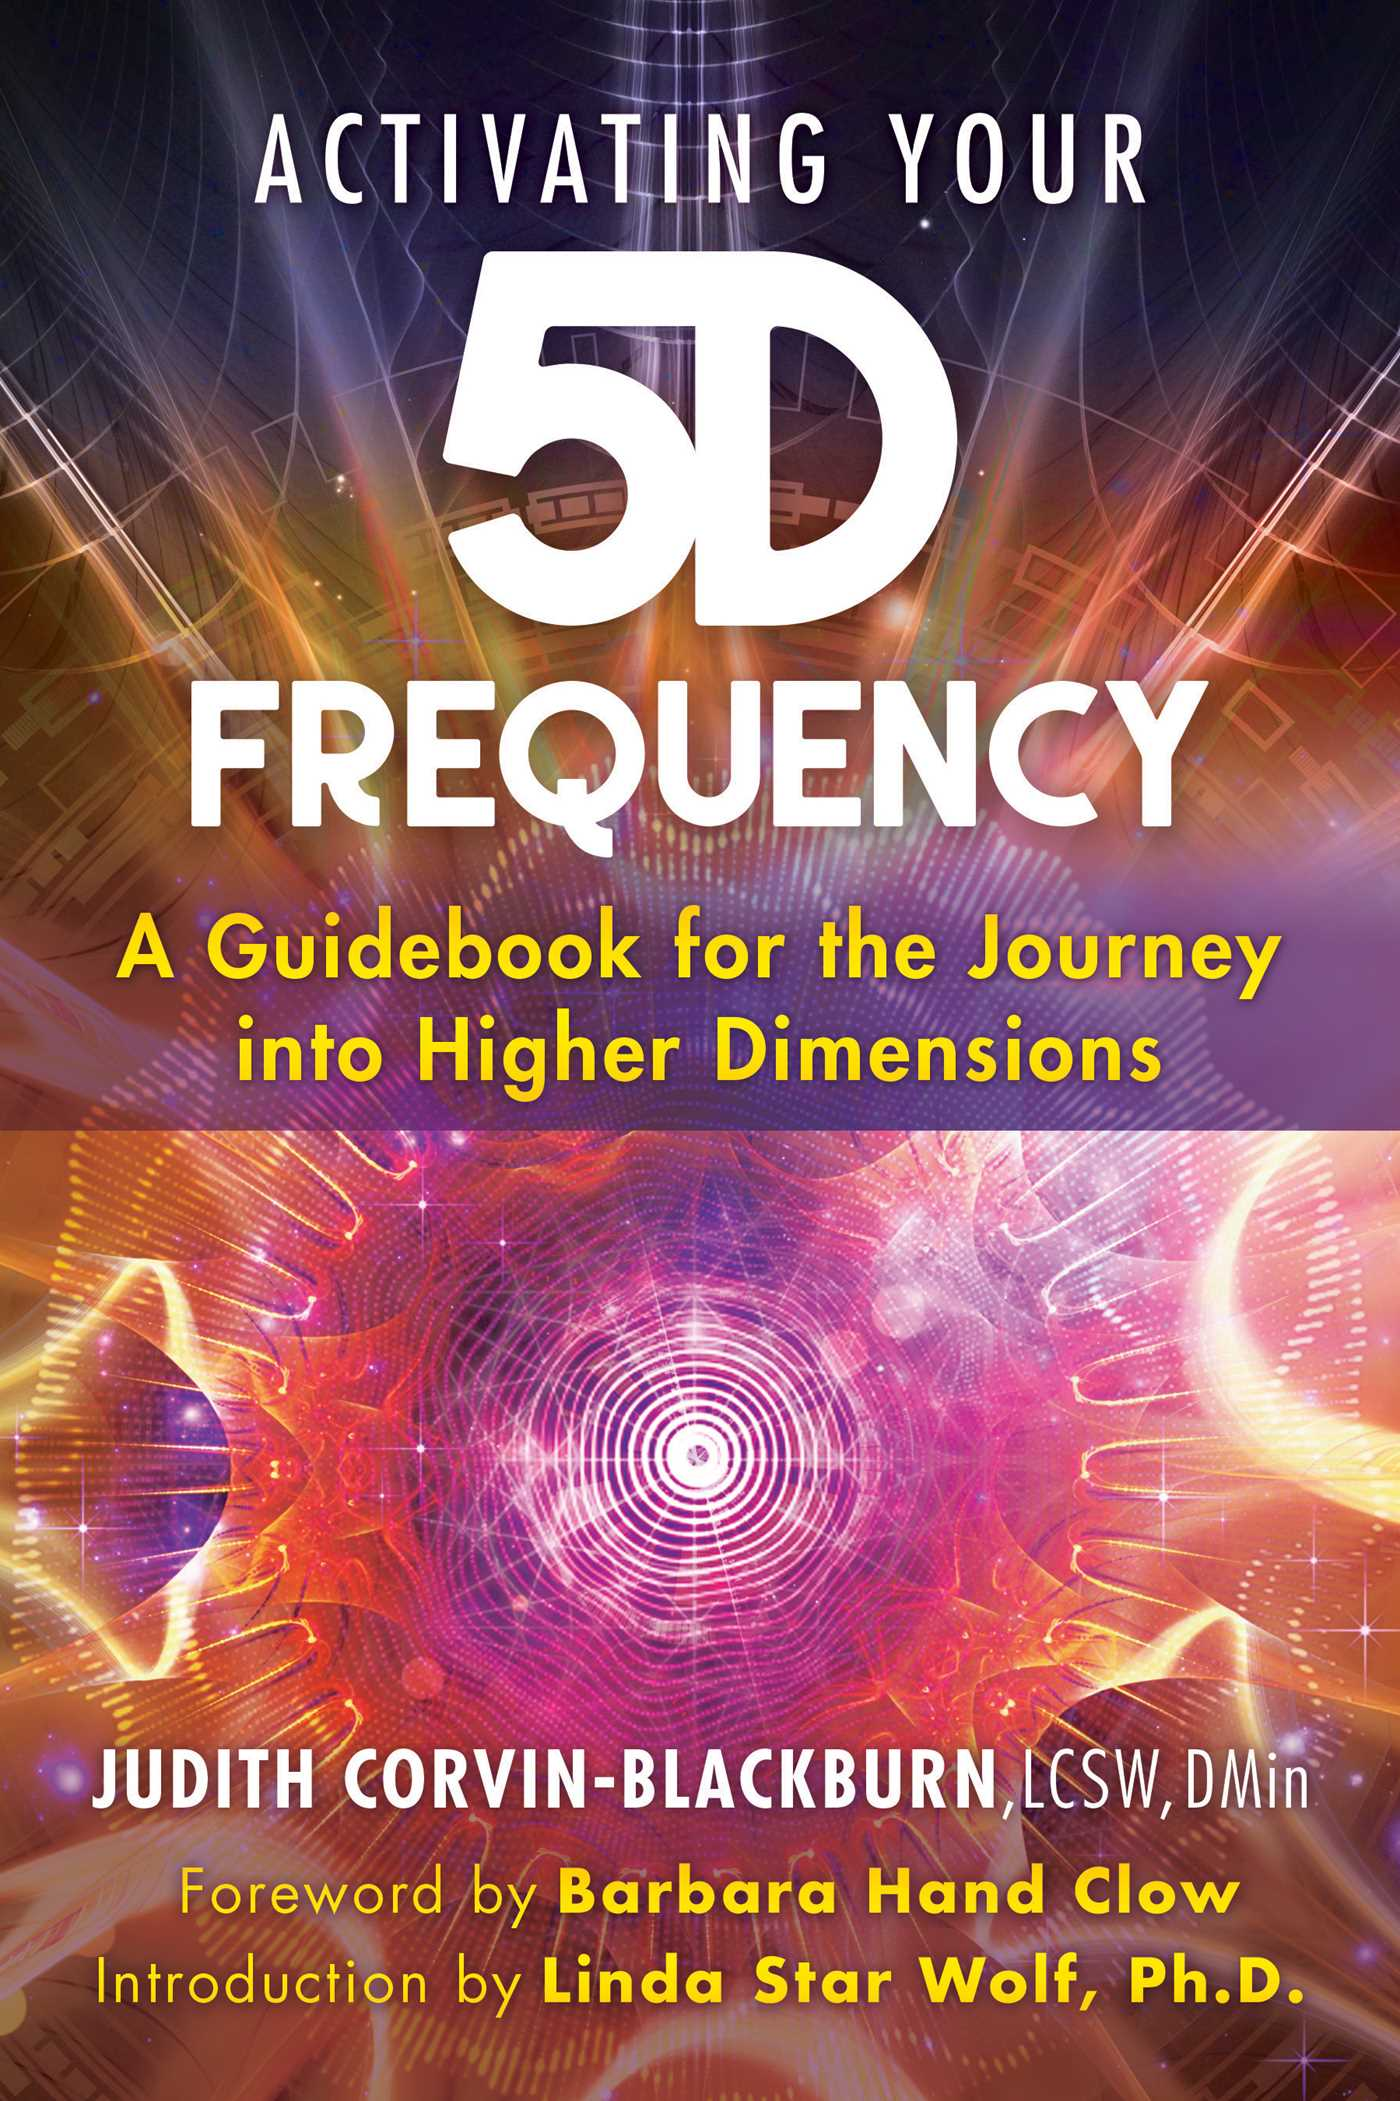 Activating your 5D Frequency; Judith Corvin-Blackburn